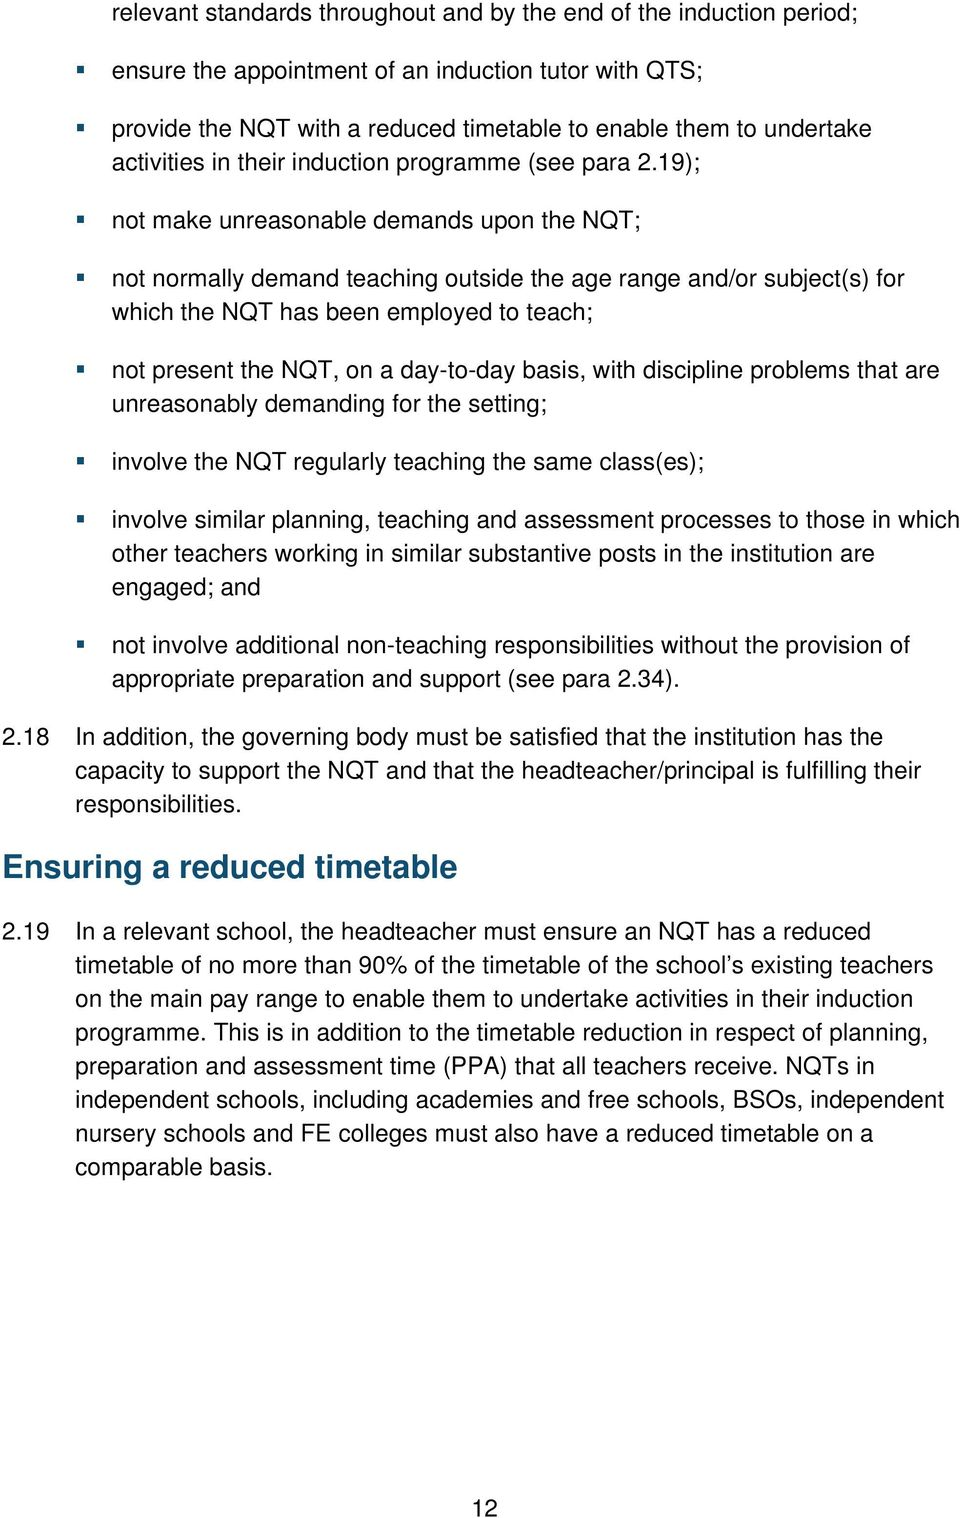 19); not make unreasonable demands upon the NQT; not normally demand teaching outside the age range and/or subject(s) for which the NQT has been employed to teach; not present the NQT, on a